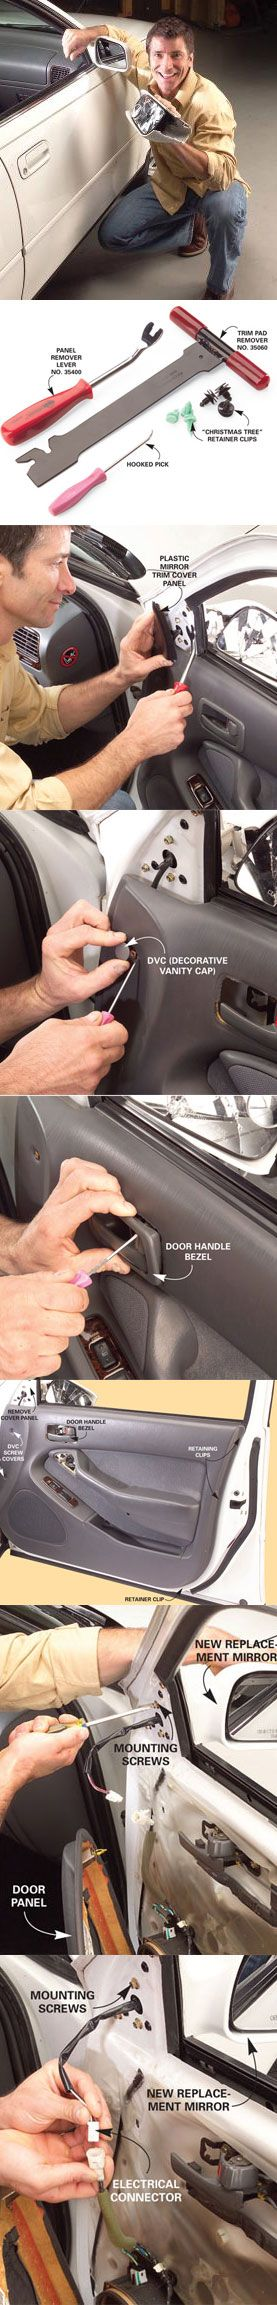 112 best detailing tips images on pinterest car detailing 112 best detailing tips images on pinterest car detailing madness and auto detailing solutioingenieria Gallery